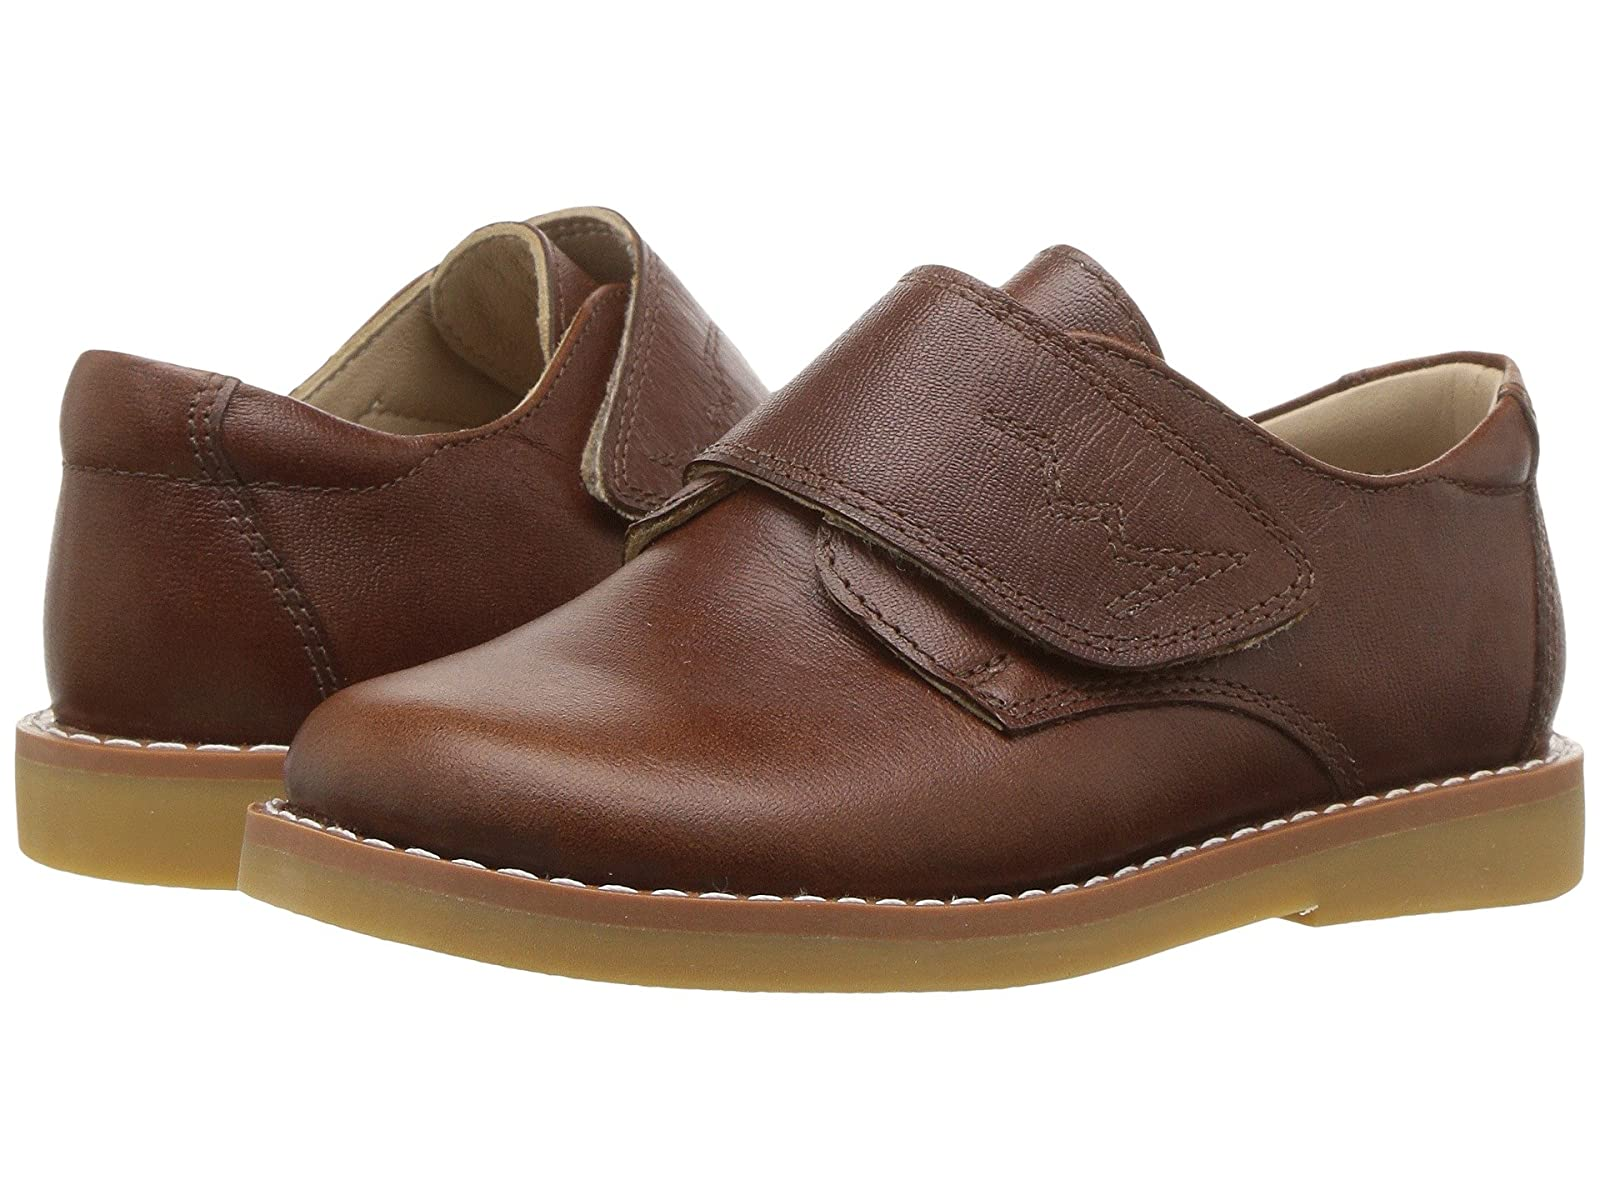 Elephantito E-Boy with Hook and Loop (Toddler/Little Kid/Big Kid)Atmospheric grades have affordable shoes